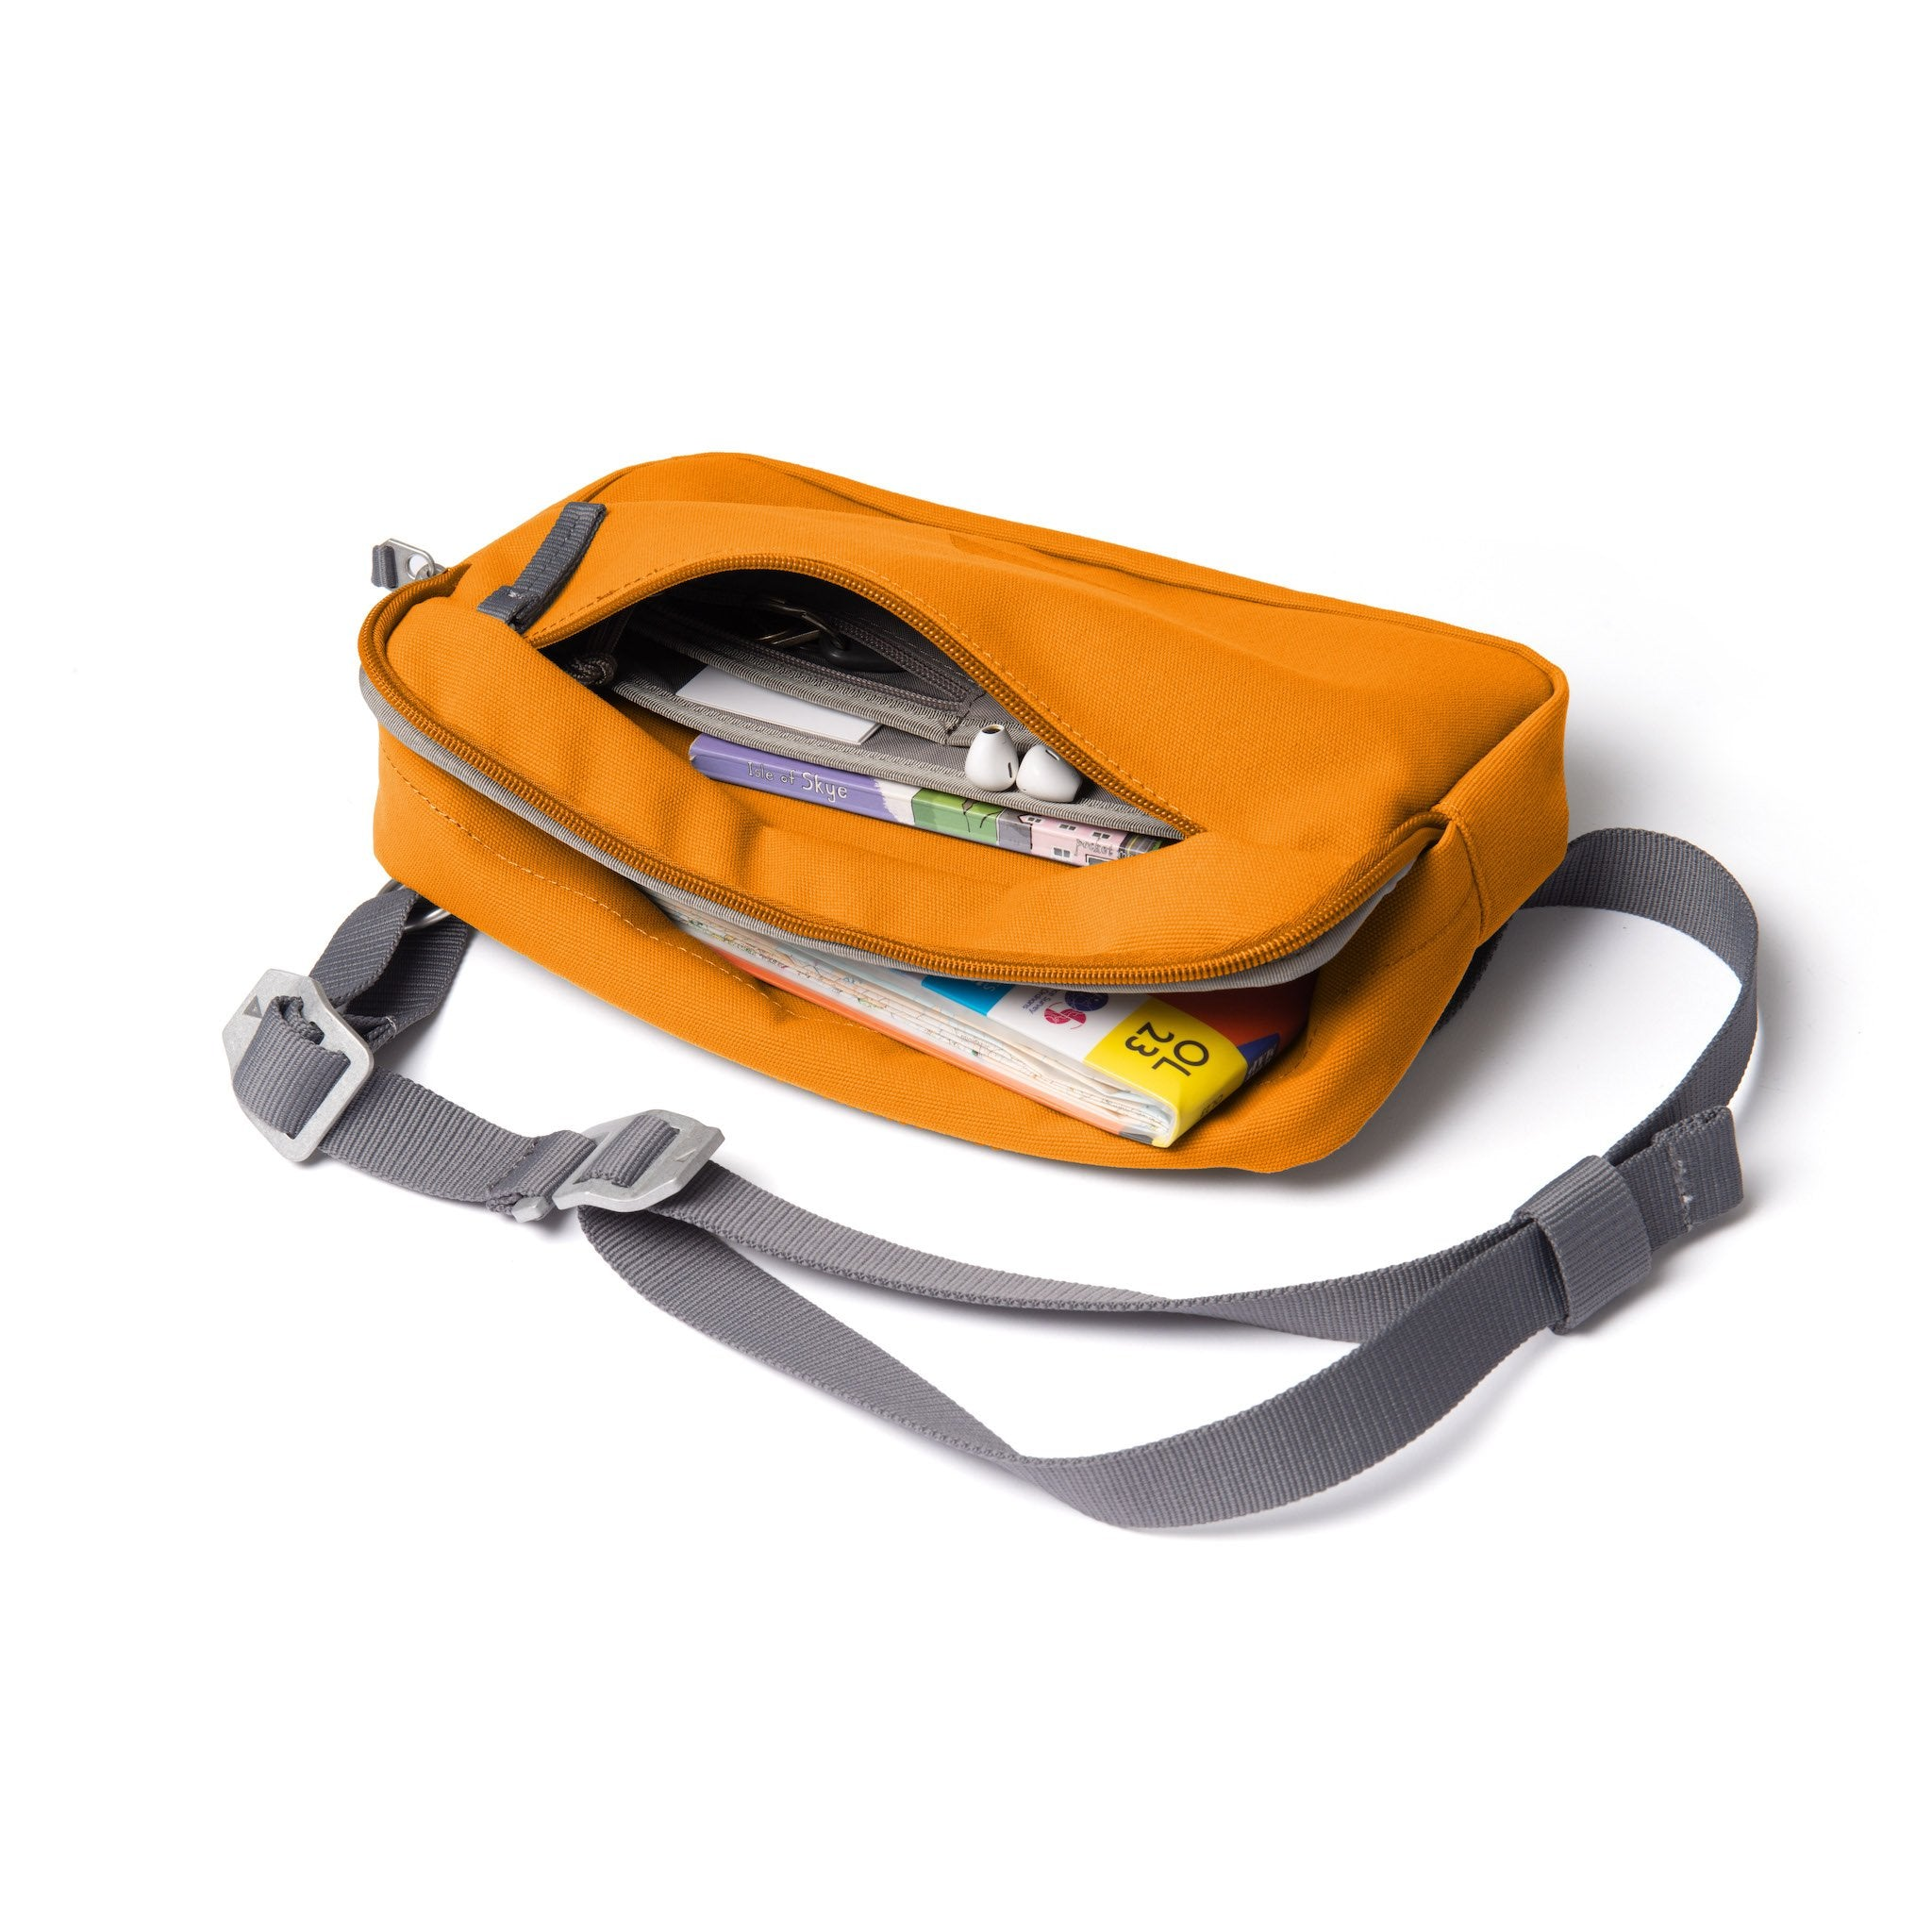 Orange shoulder bag with front zip open showing map and guidebooks.